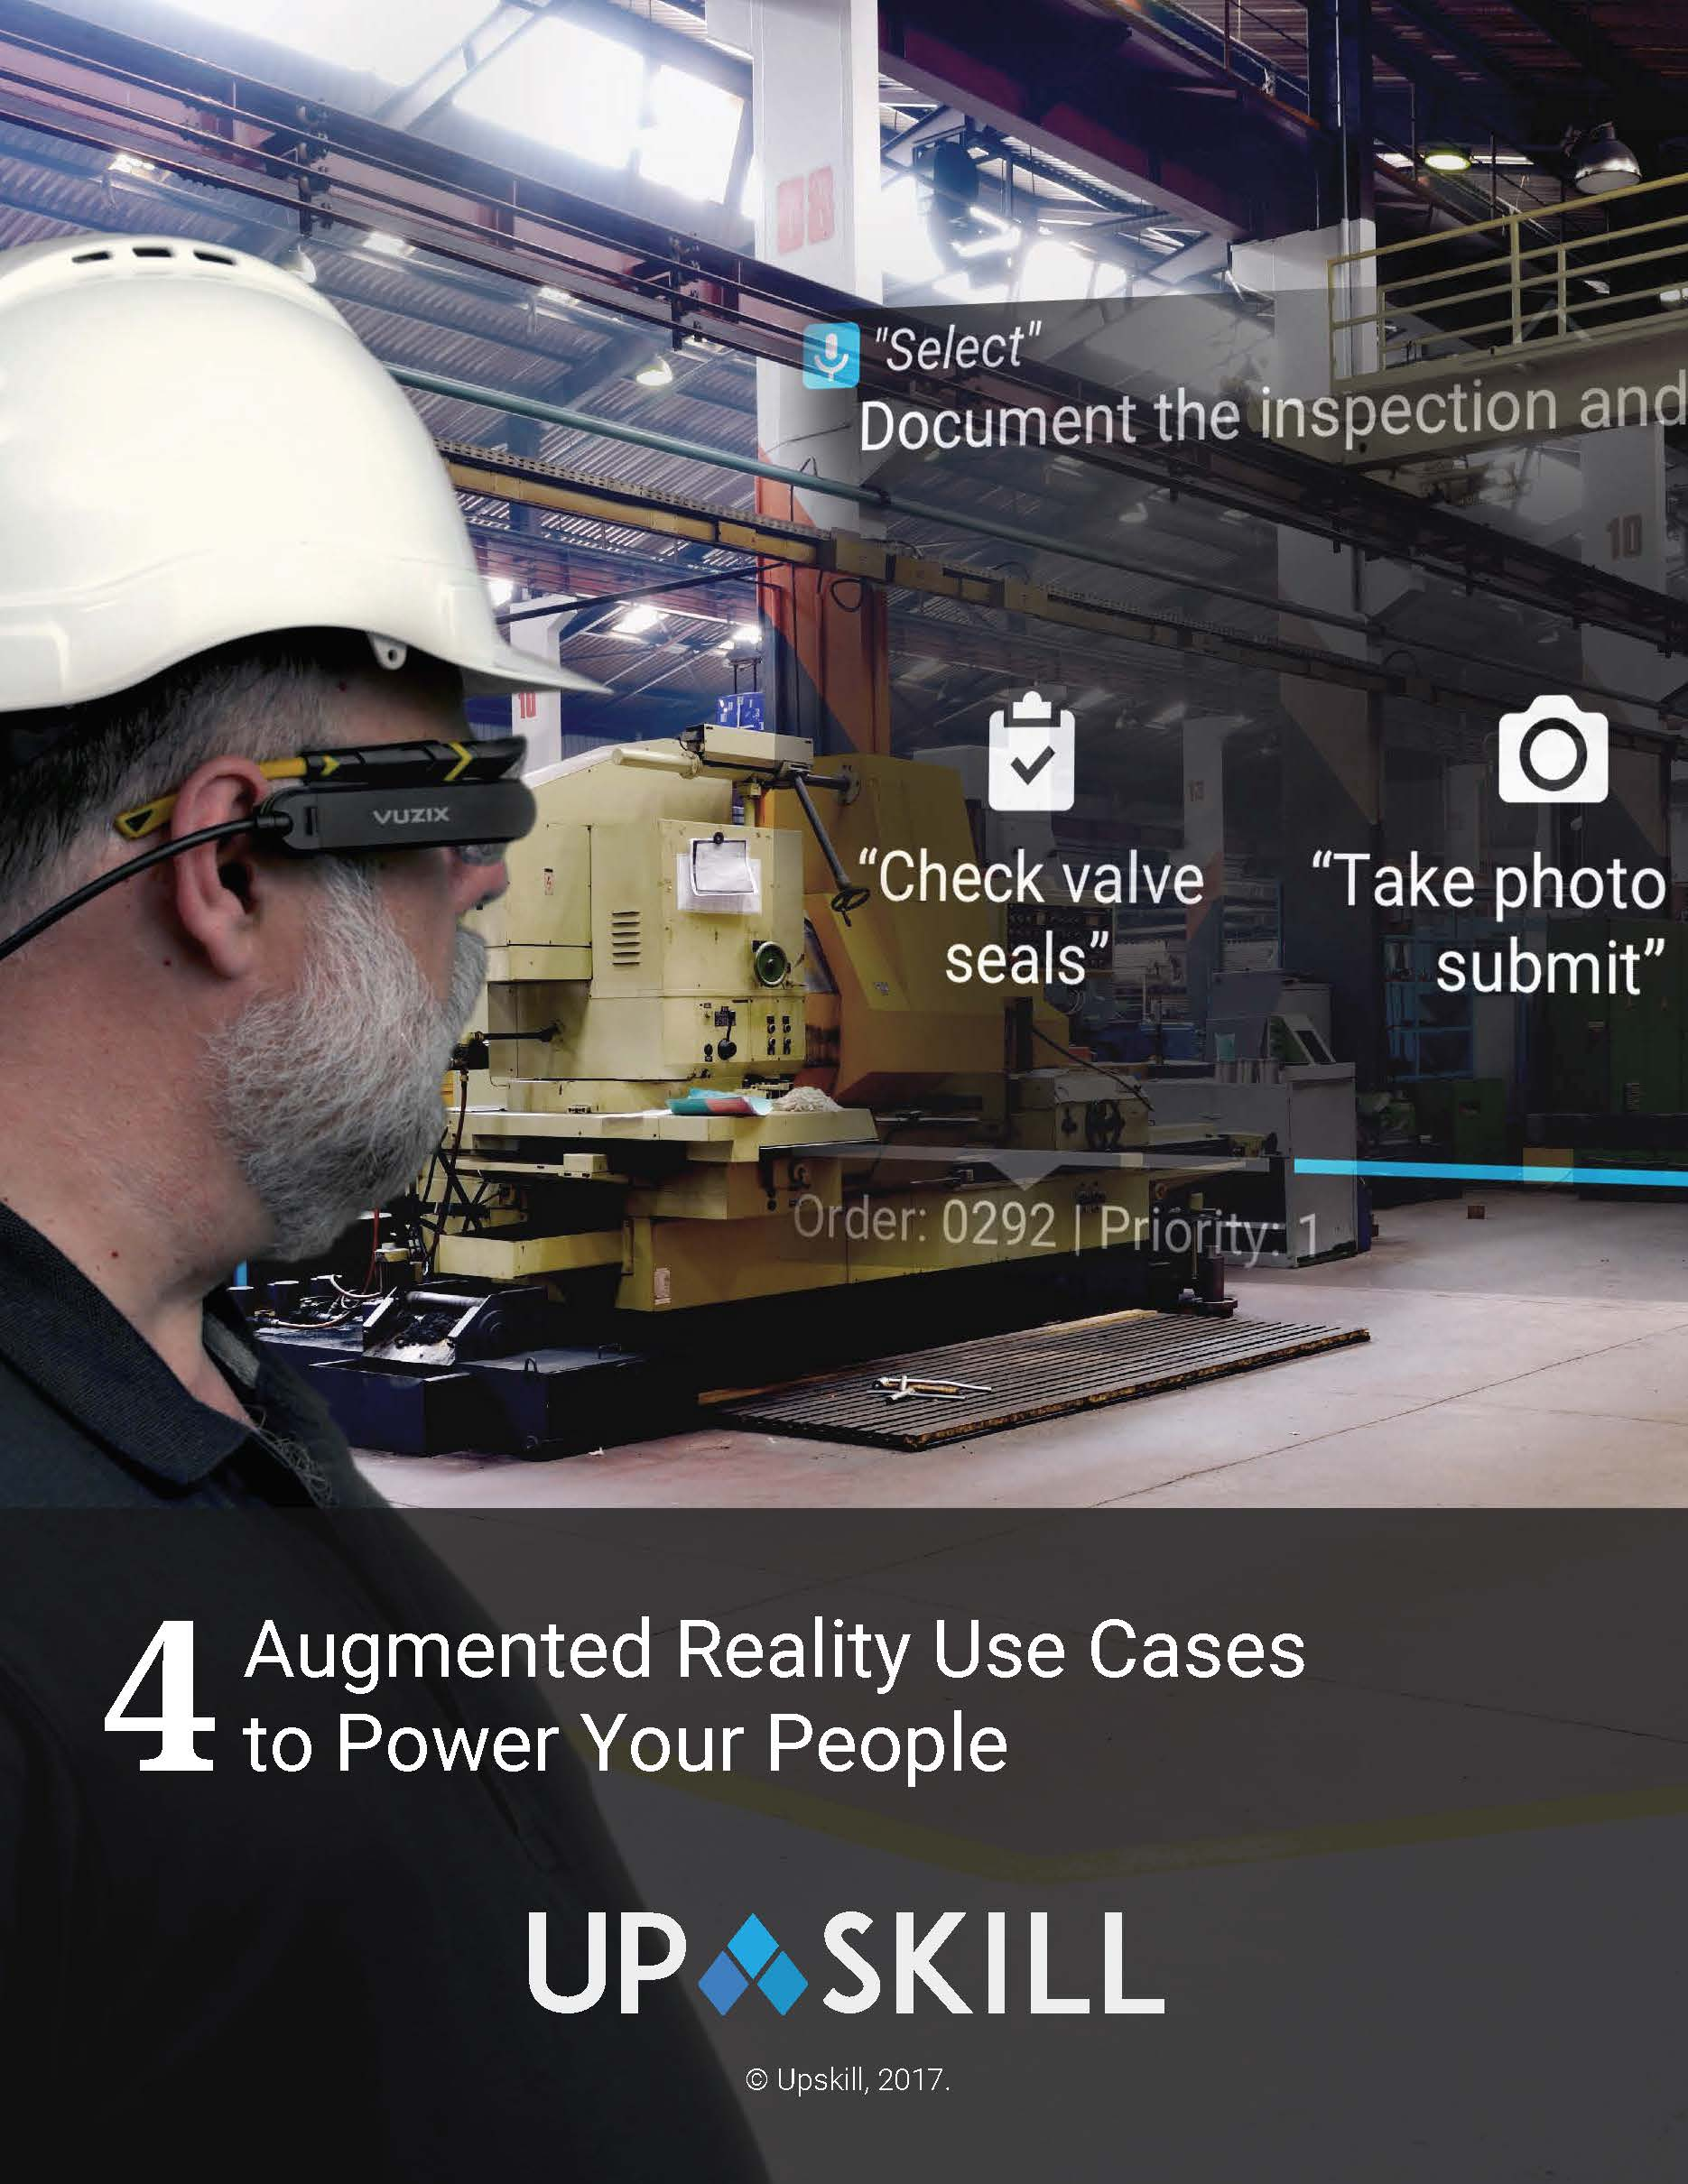 4 Augmented Reality Use Cases to Power Your People Image